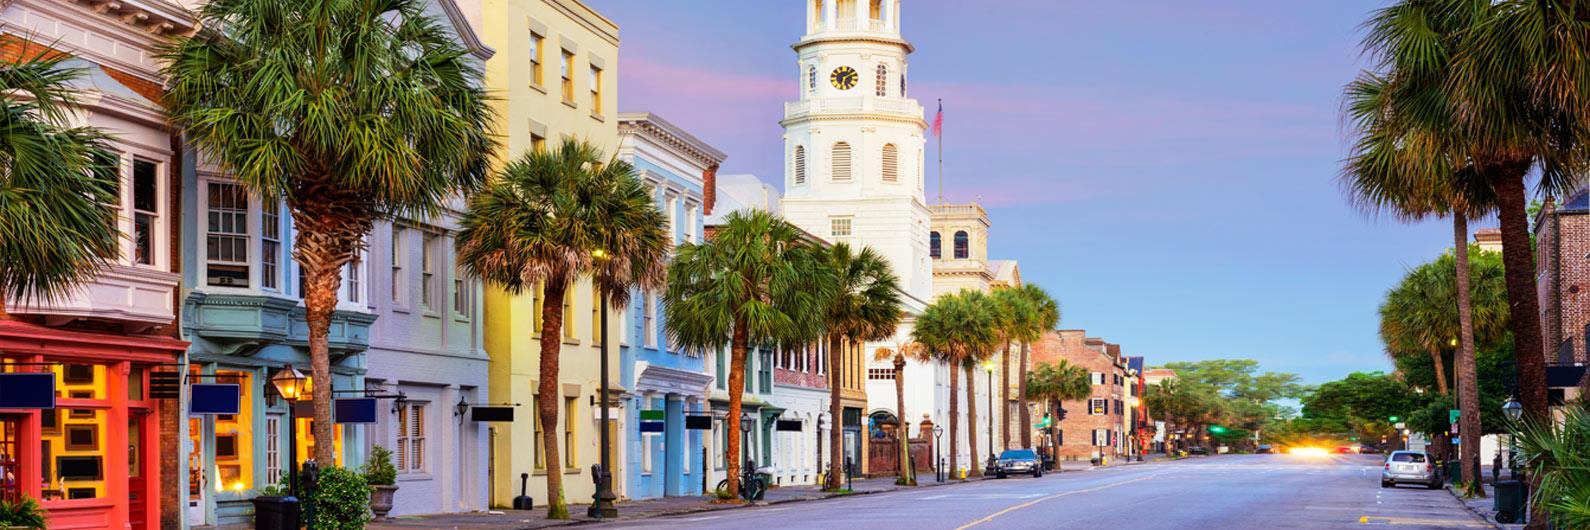 Book Flights To Charleston Sc Chs Frontier Airlines